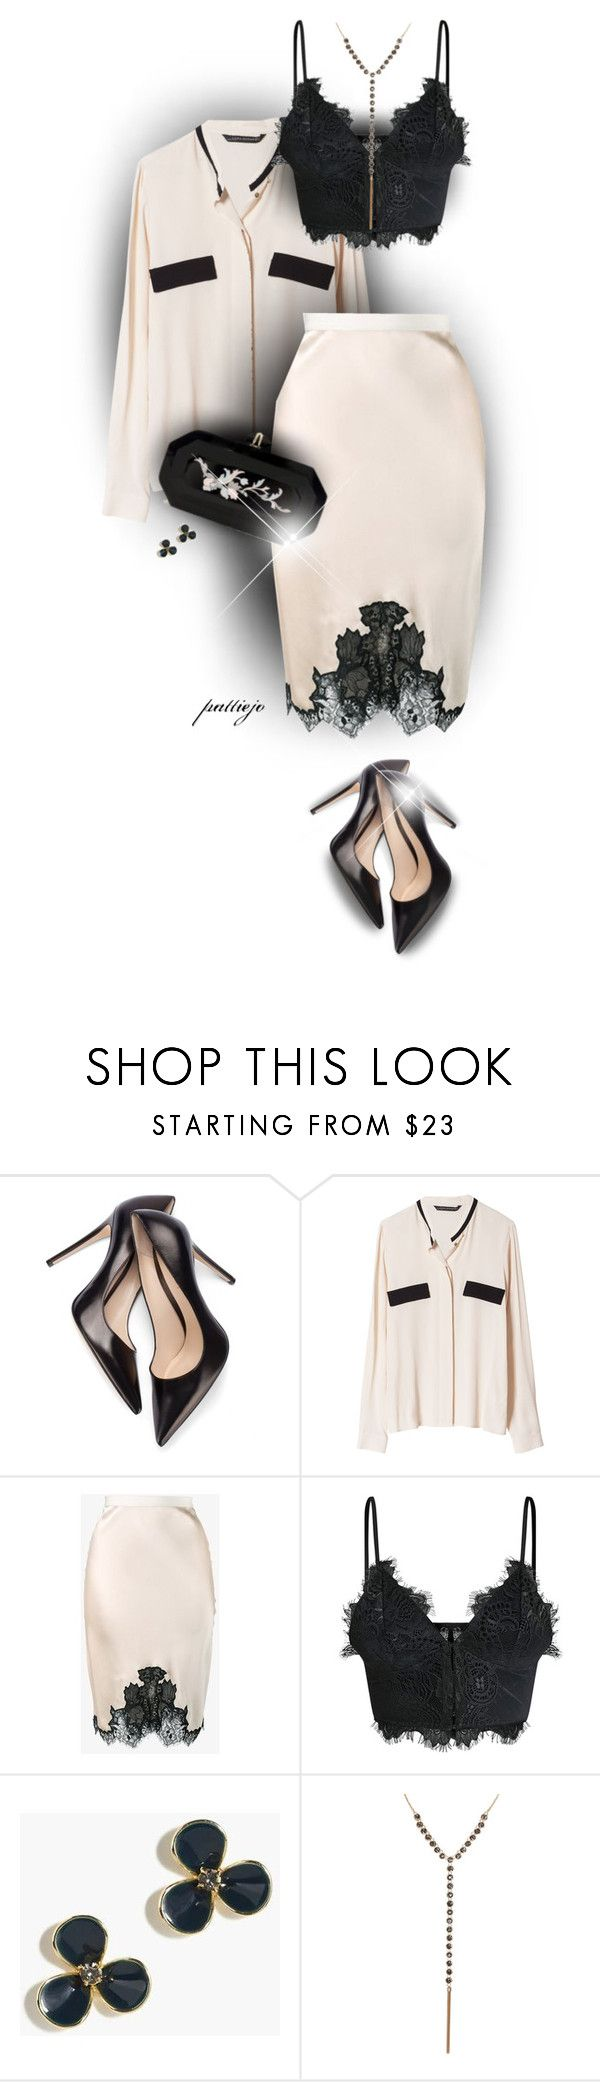 """""""Slip Skirt"""" by rockreborn ❤ liked on Polyvore featuring Zara, Helmut Lang, J.Crew, Marchesa and Humble Chic"""